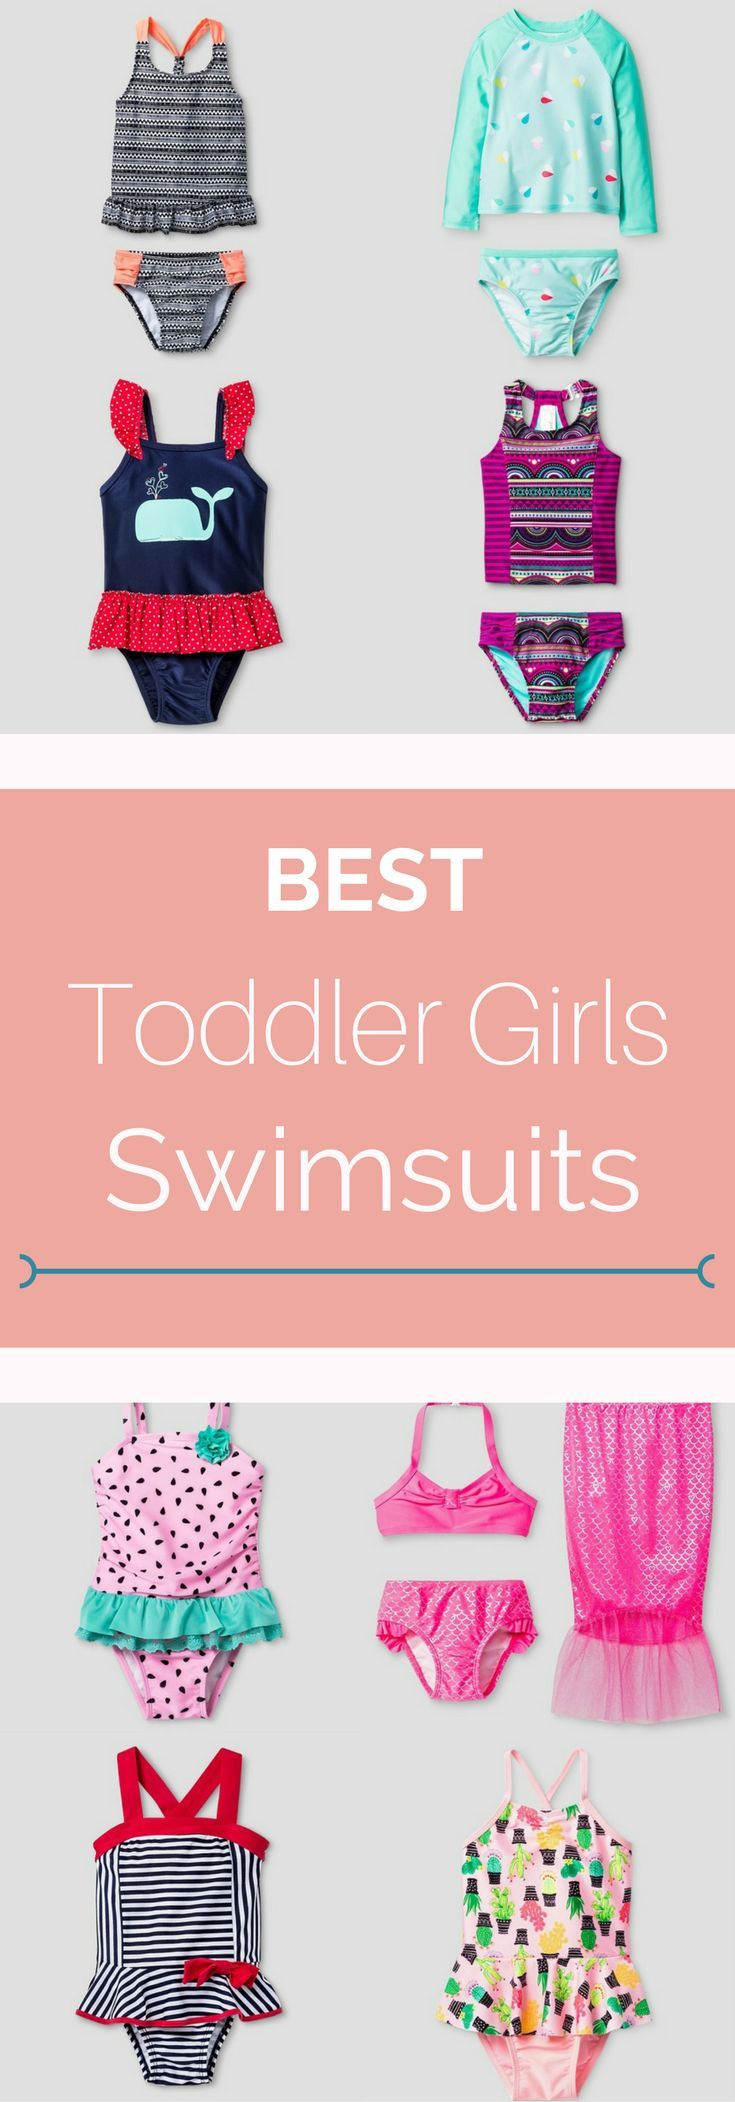 These are the best toddler girls swimsuits and all are from Target!